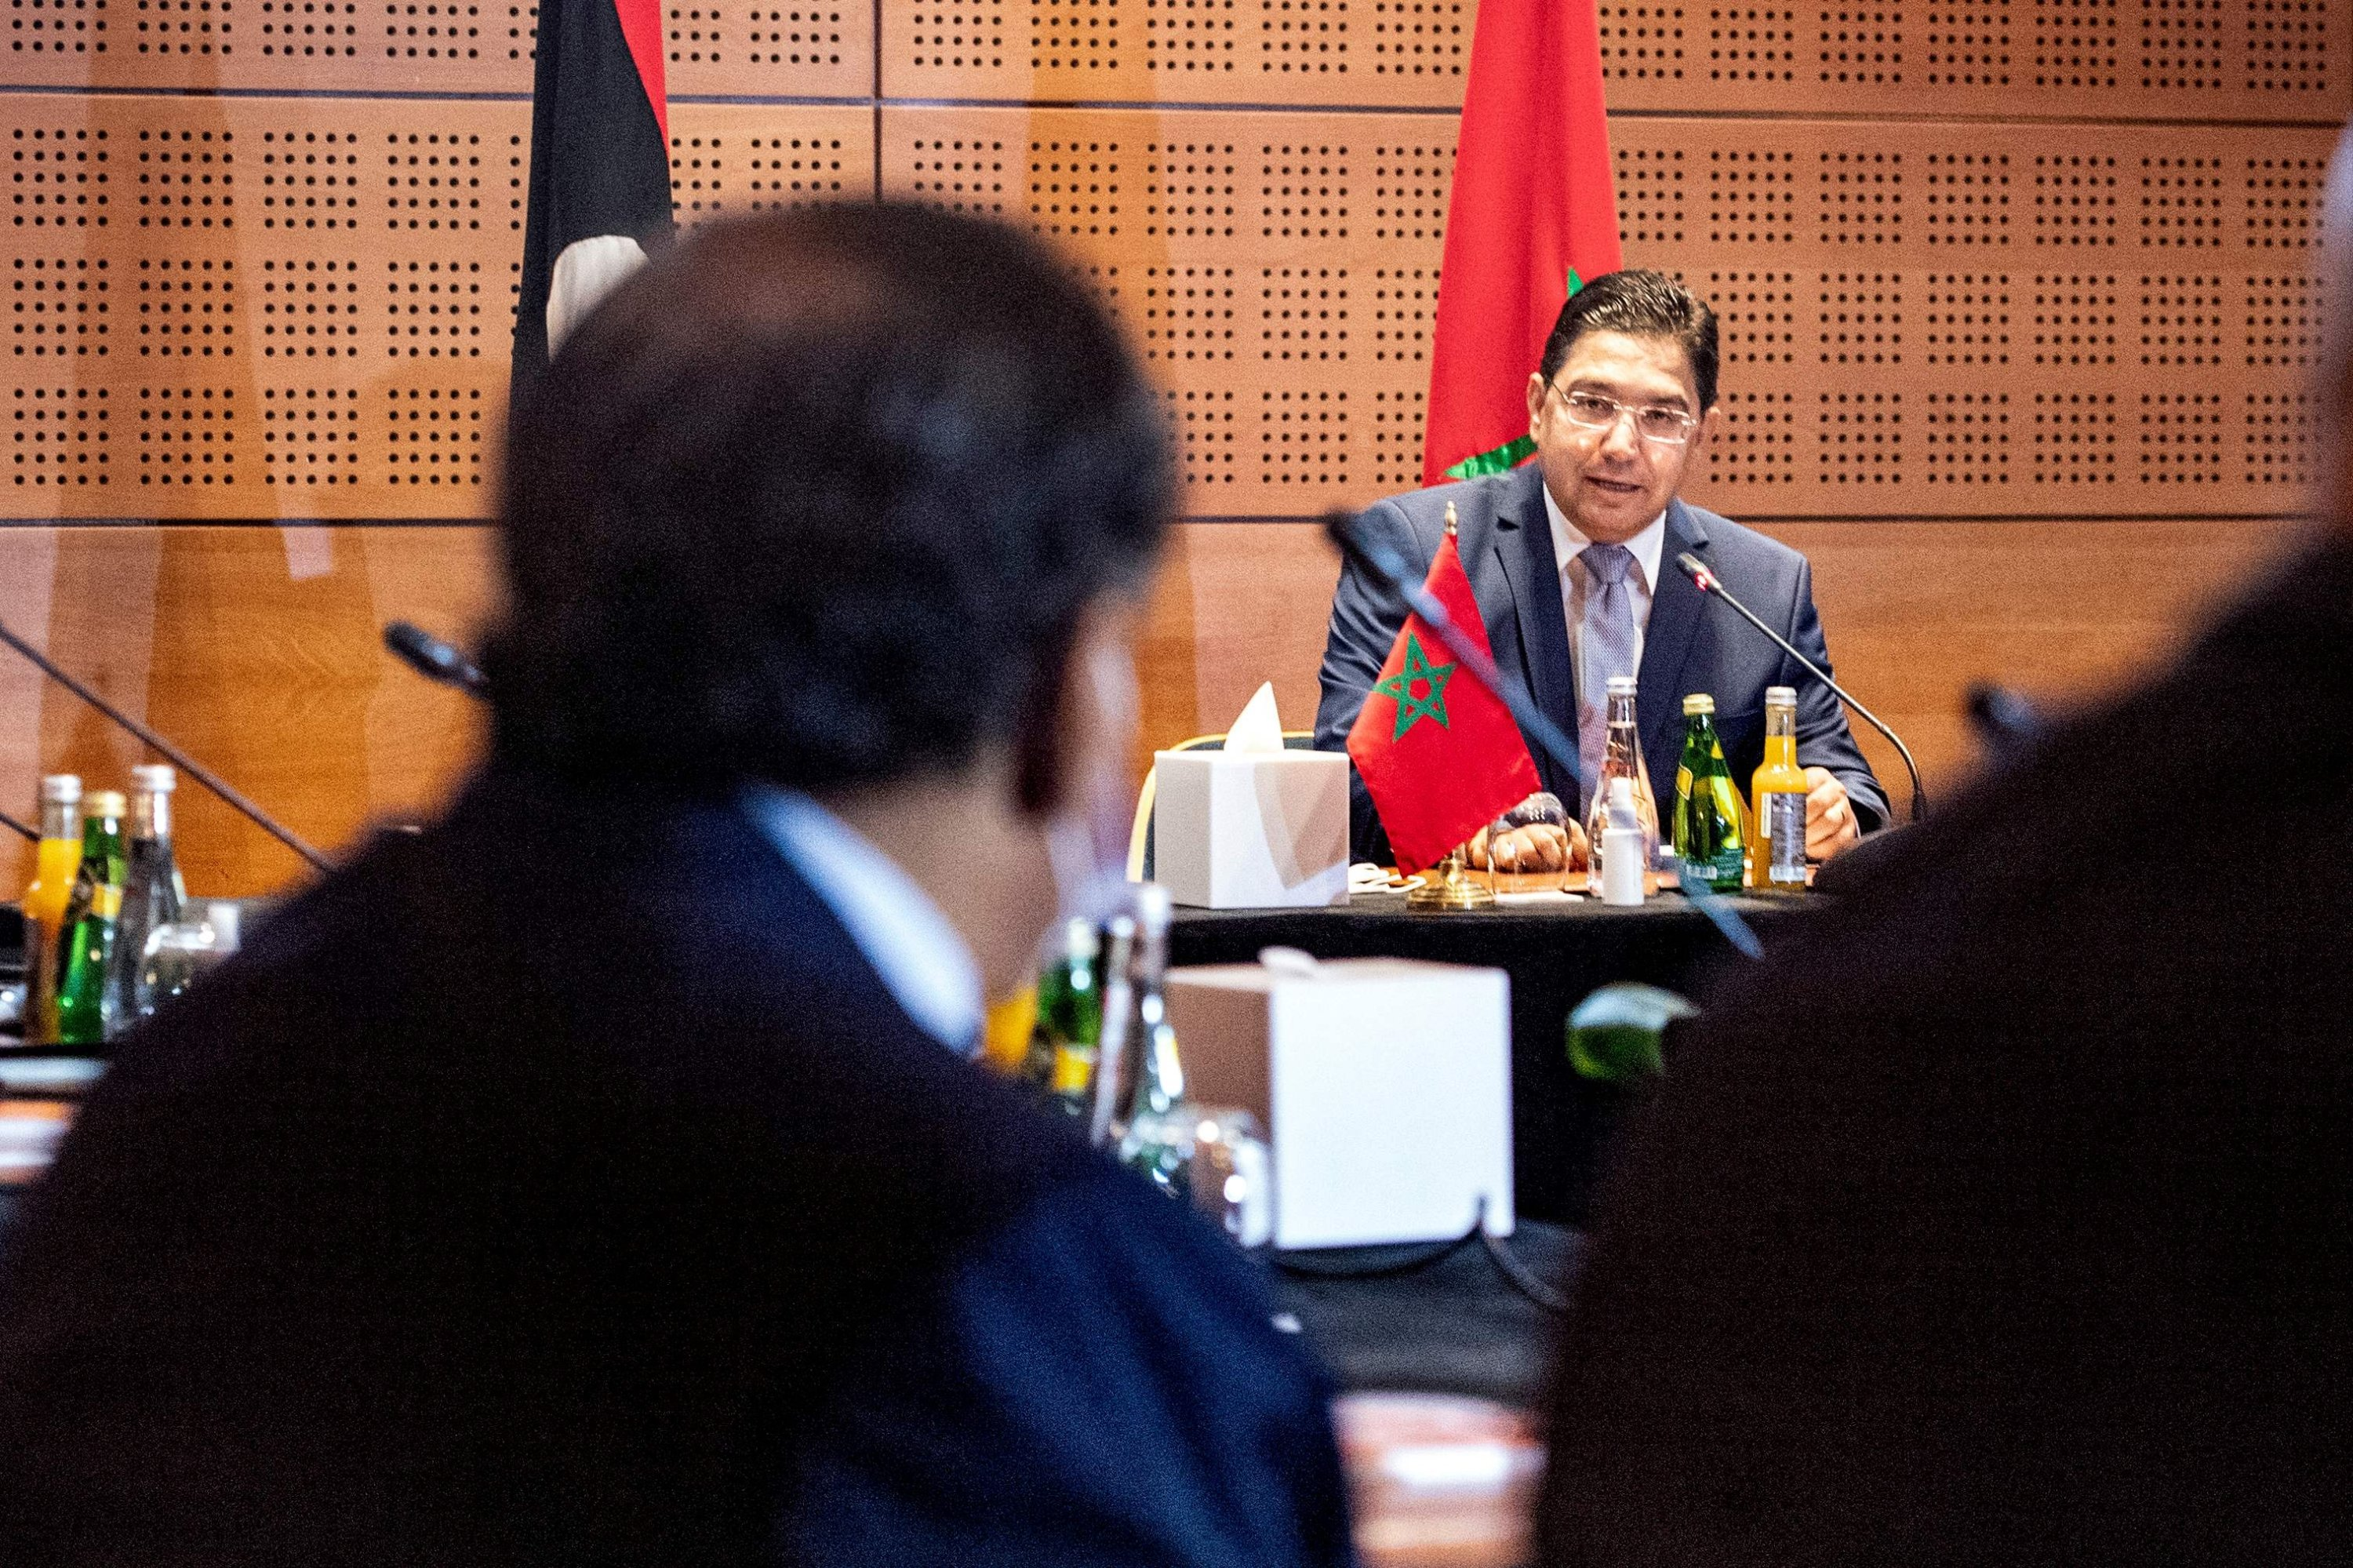 Nasser Bourita (C), Morocco's Minister of Foreign Affairs and International Cooperation, chairs a meeting of representatives of Libya's warring parties in the coastal town of Bouznika, Sept. 6, 2020. (AFP Photo)